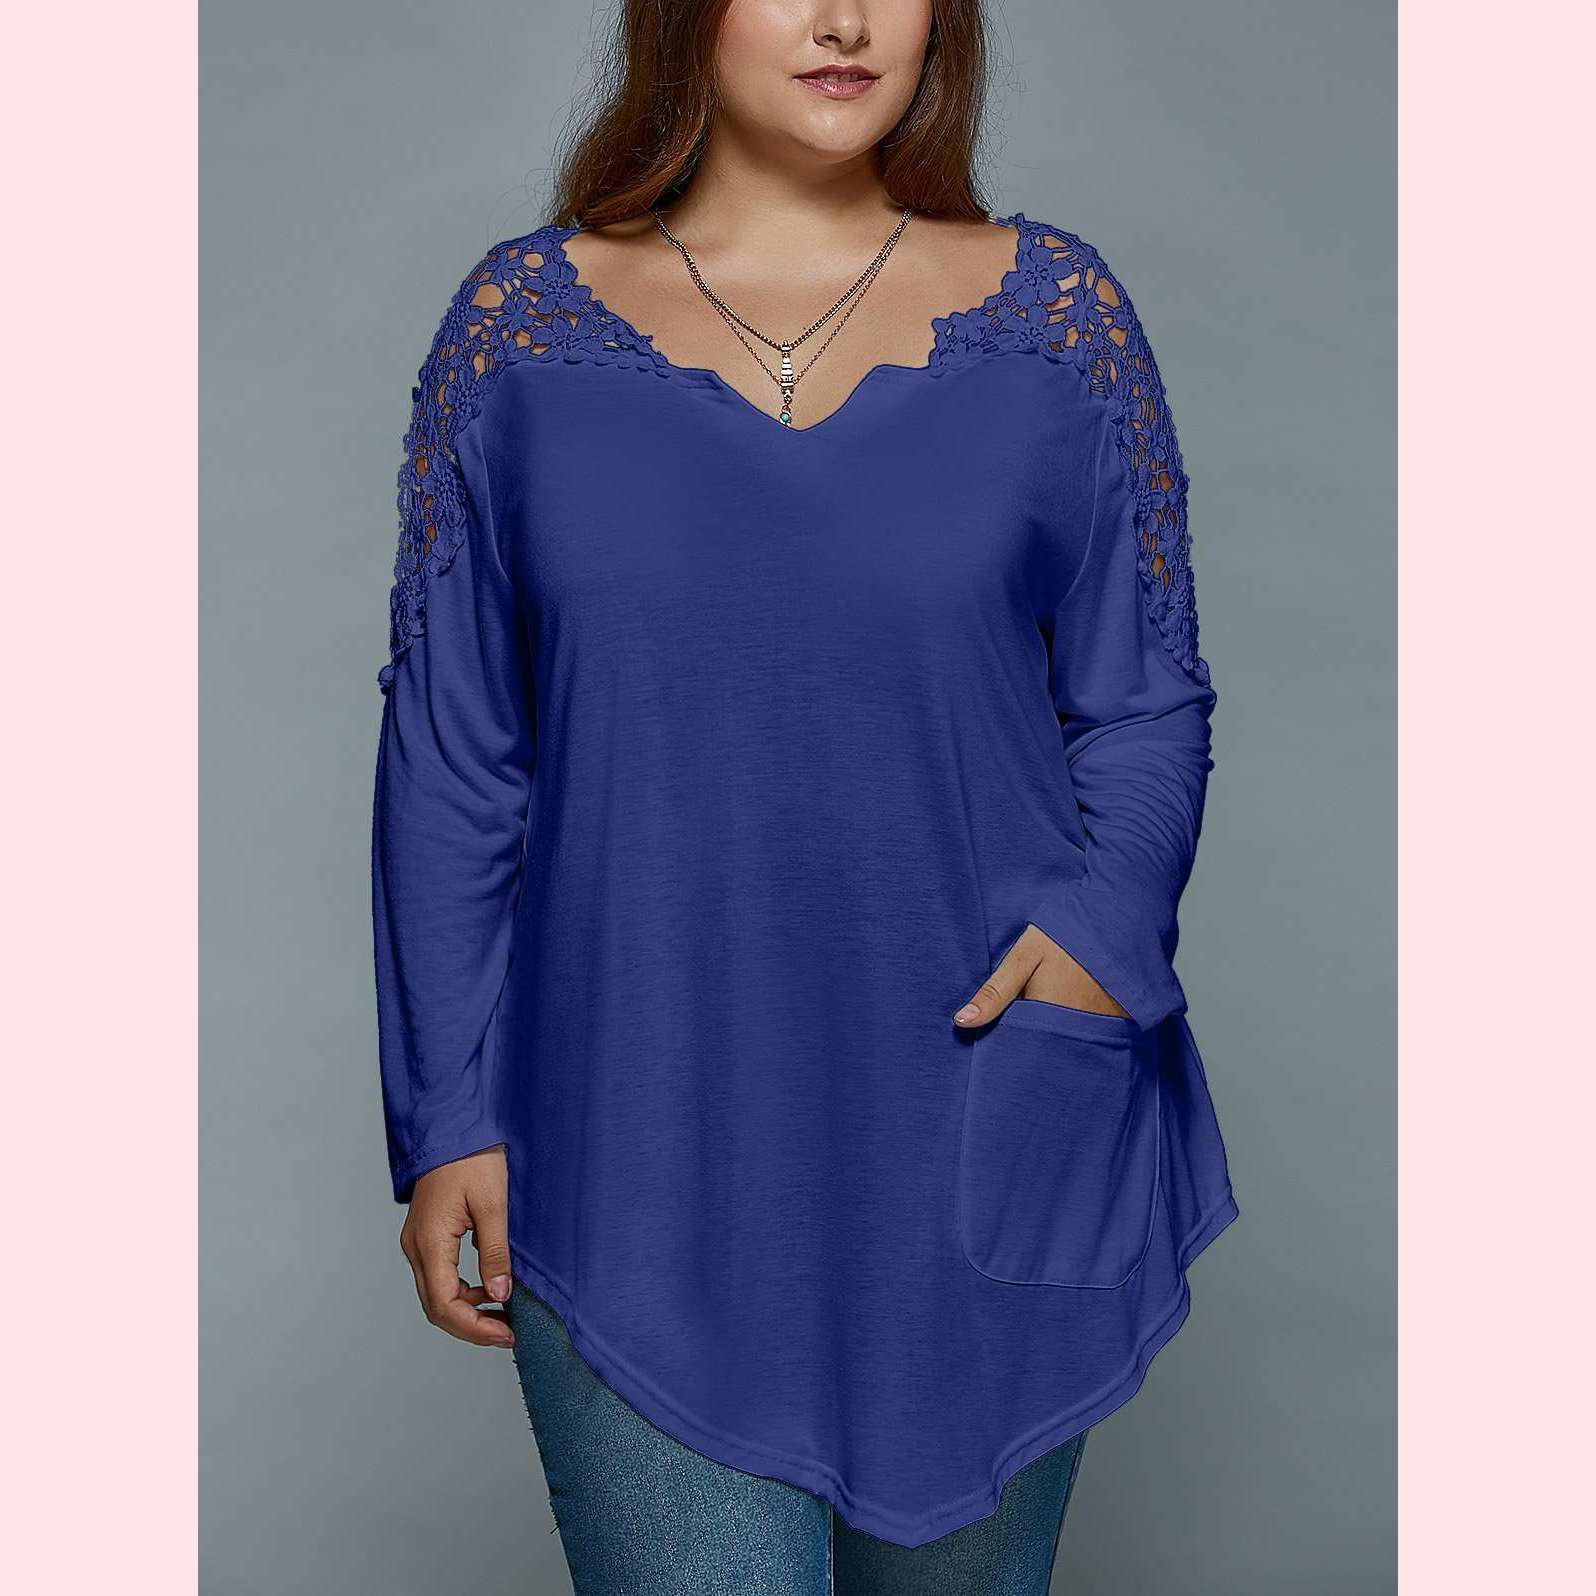 Sweet Daisy Top,Blissful Chic,Blue Violet / XL